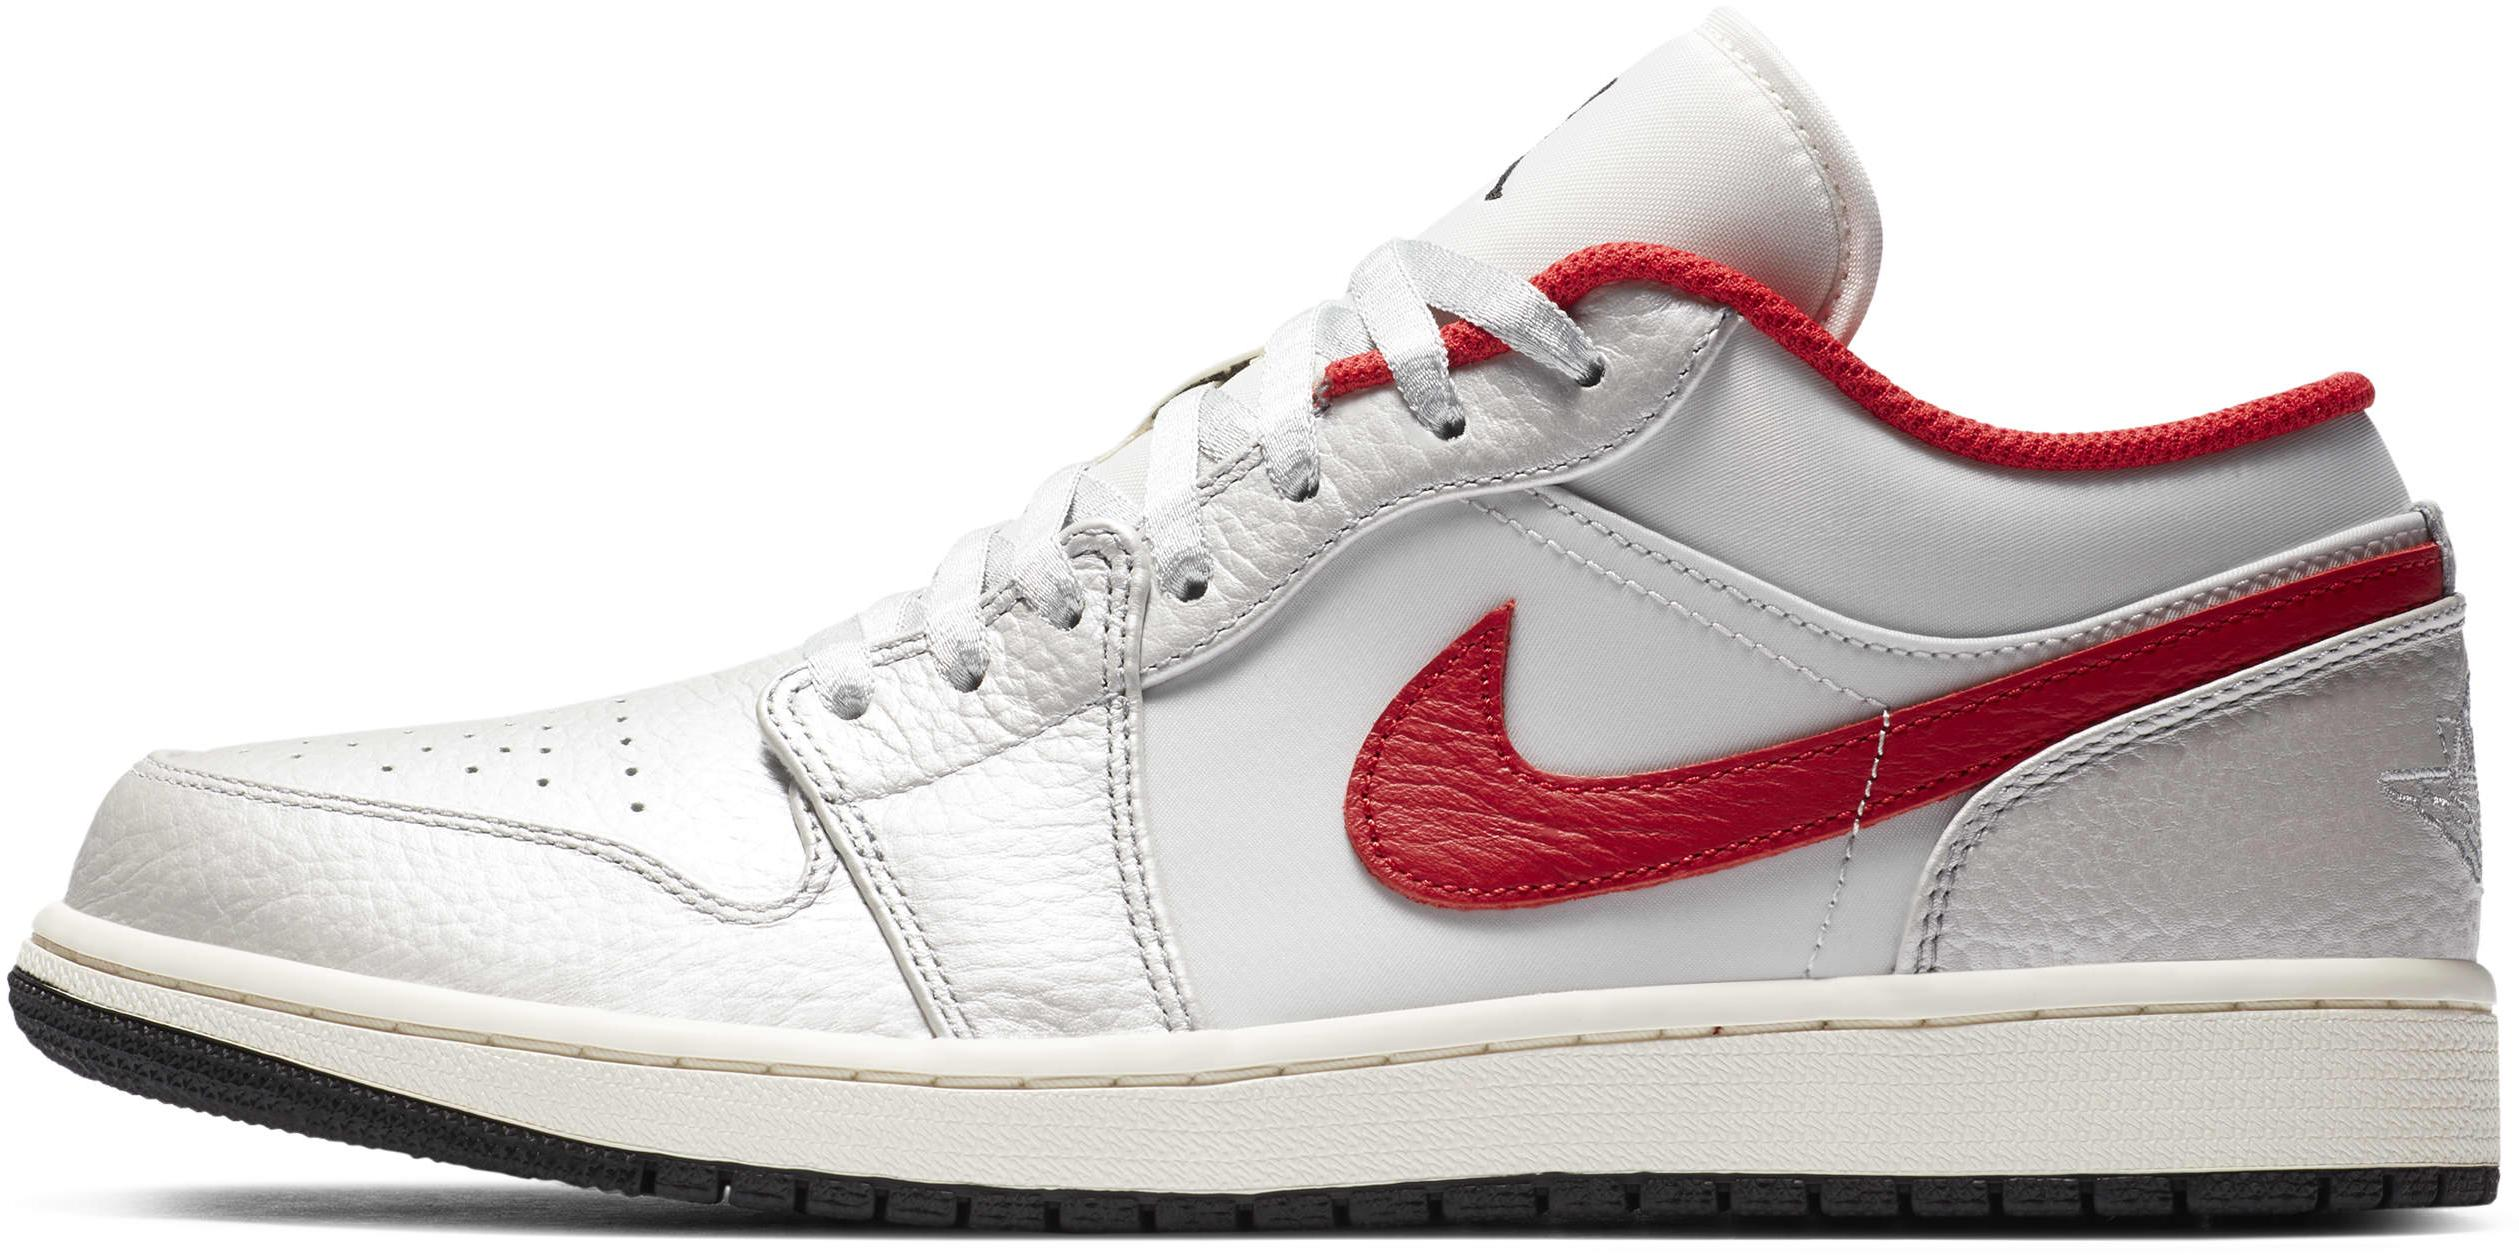 Air Jordan 1 Low Premium Metallic Silver/Sail/Black/University Red